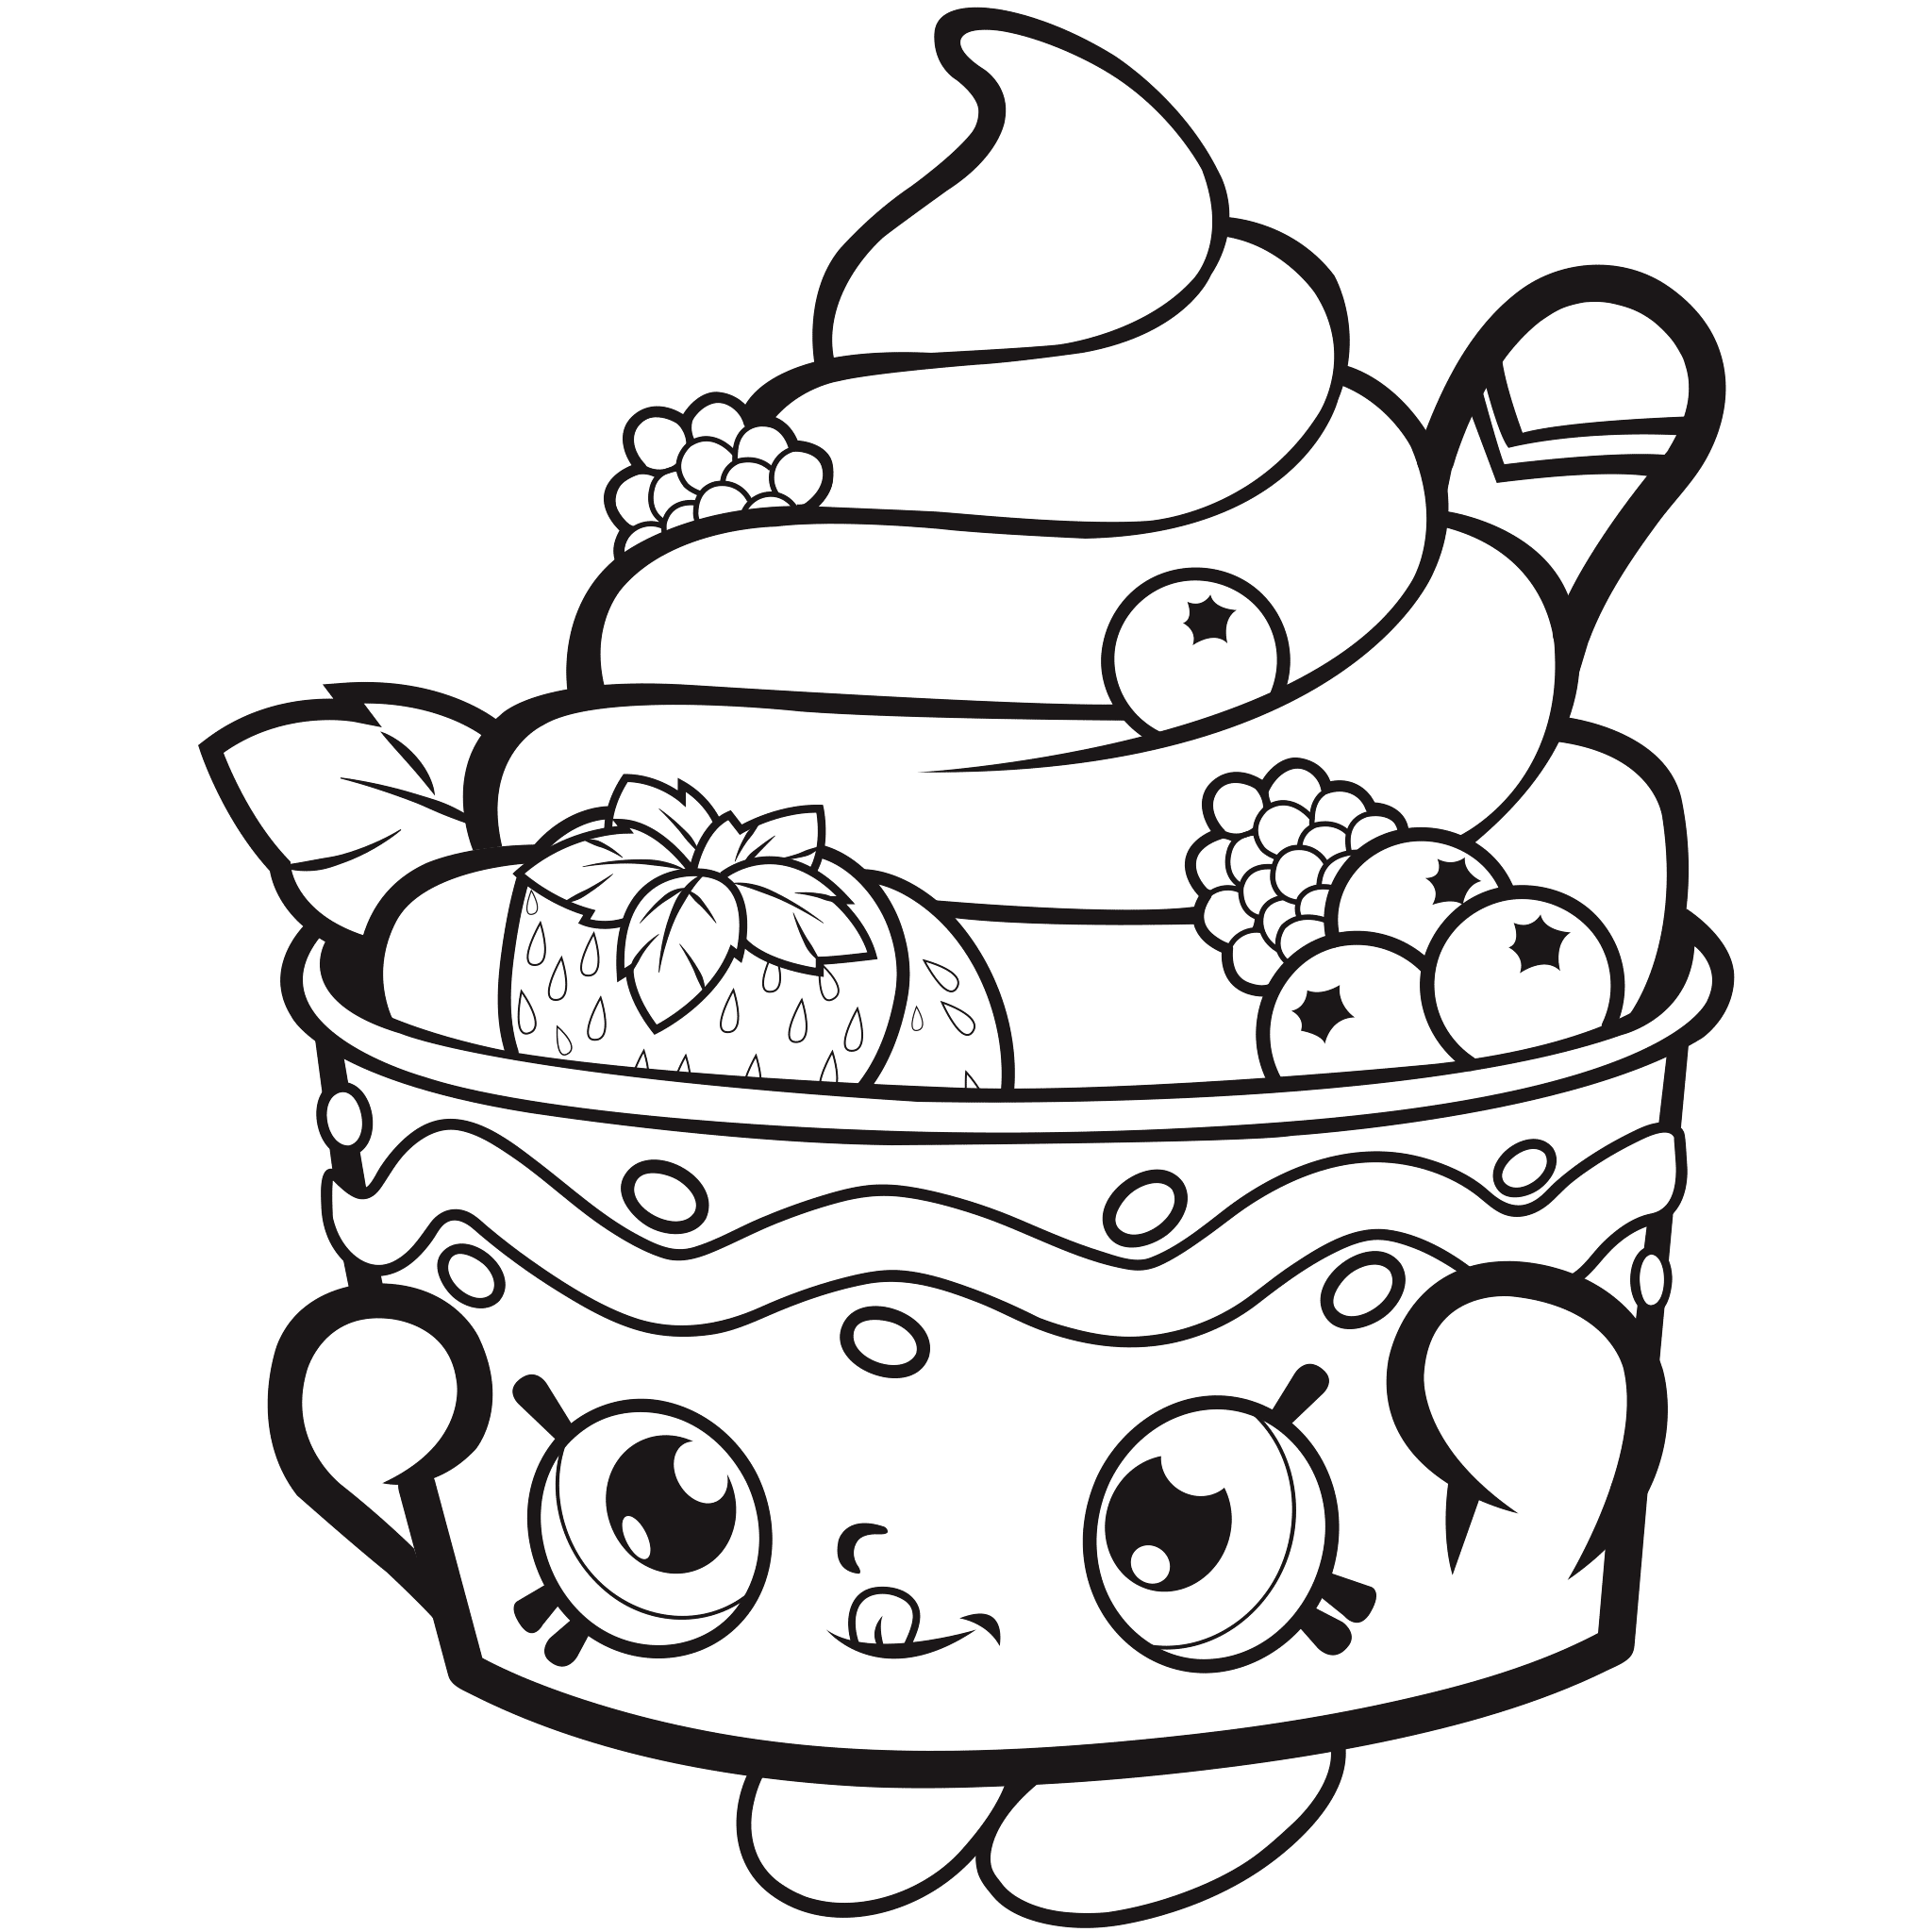 coloring pages shopkin shopkins coloring pages best coloring pages for kids coloring shopkin pages